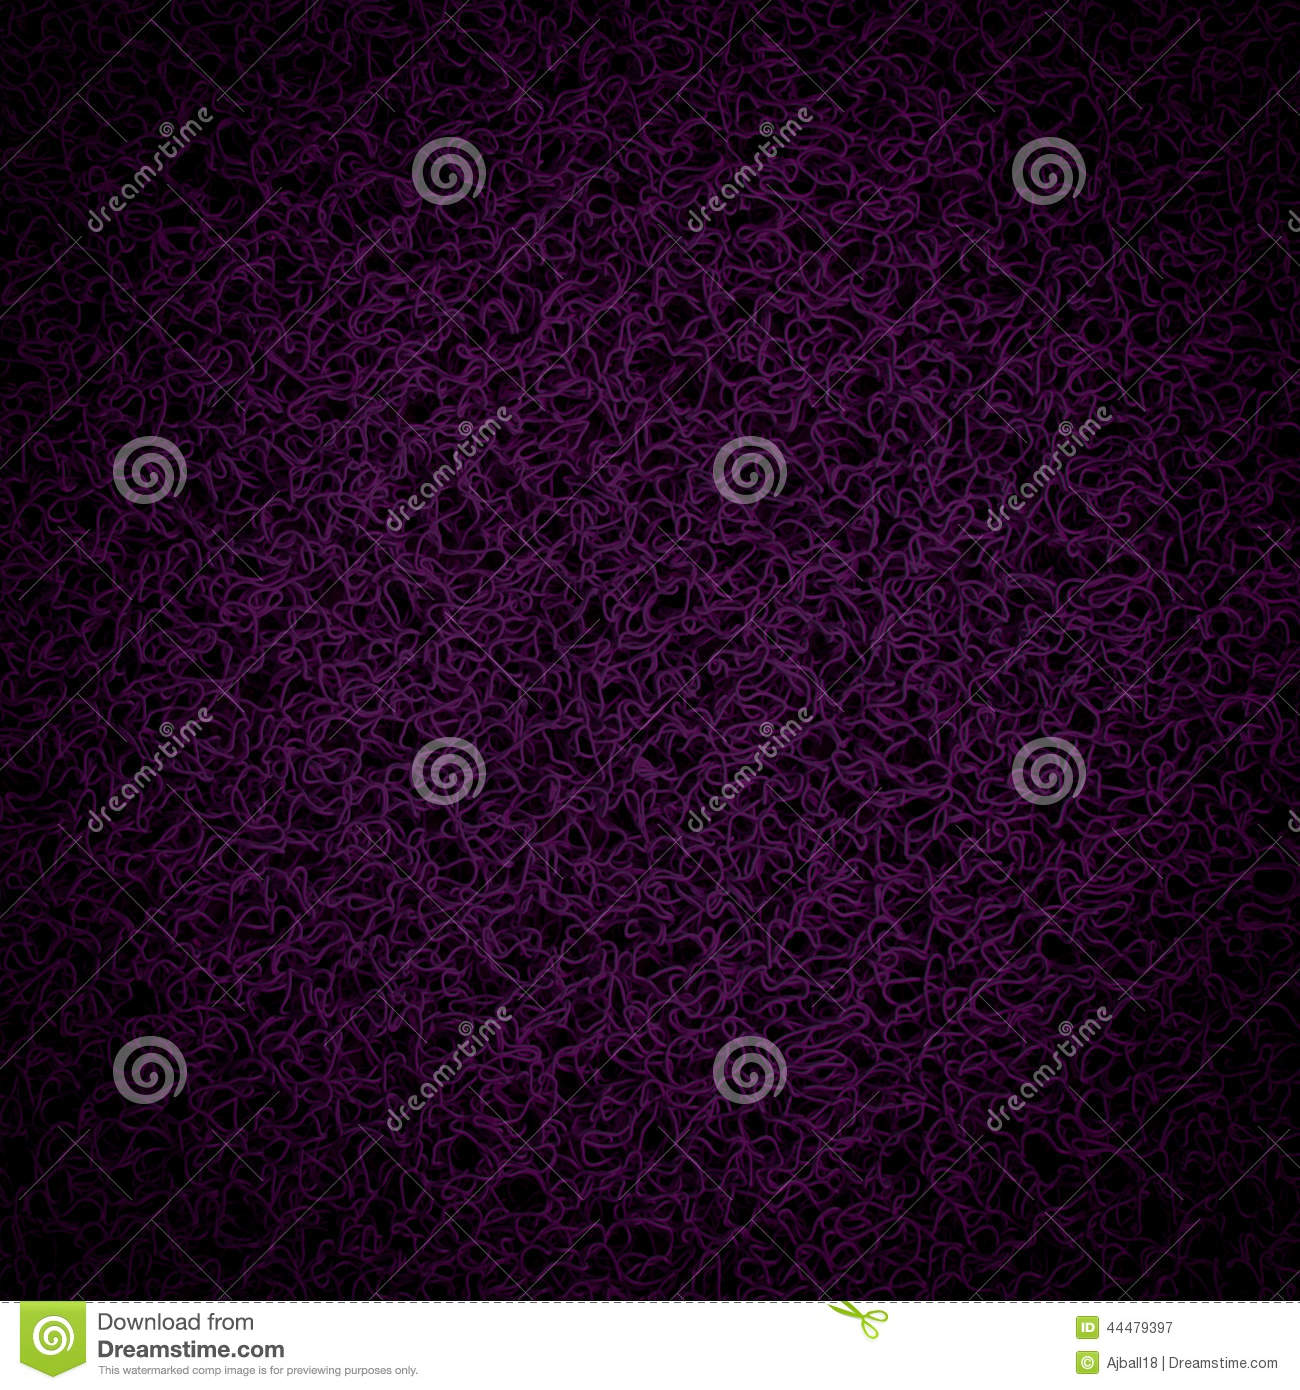 Background of dark purple carpet or foot scraper o stock for Dark purple carpet texture